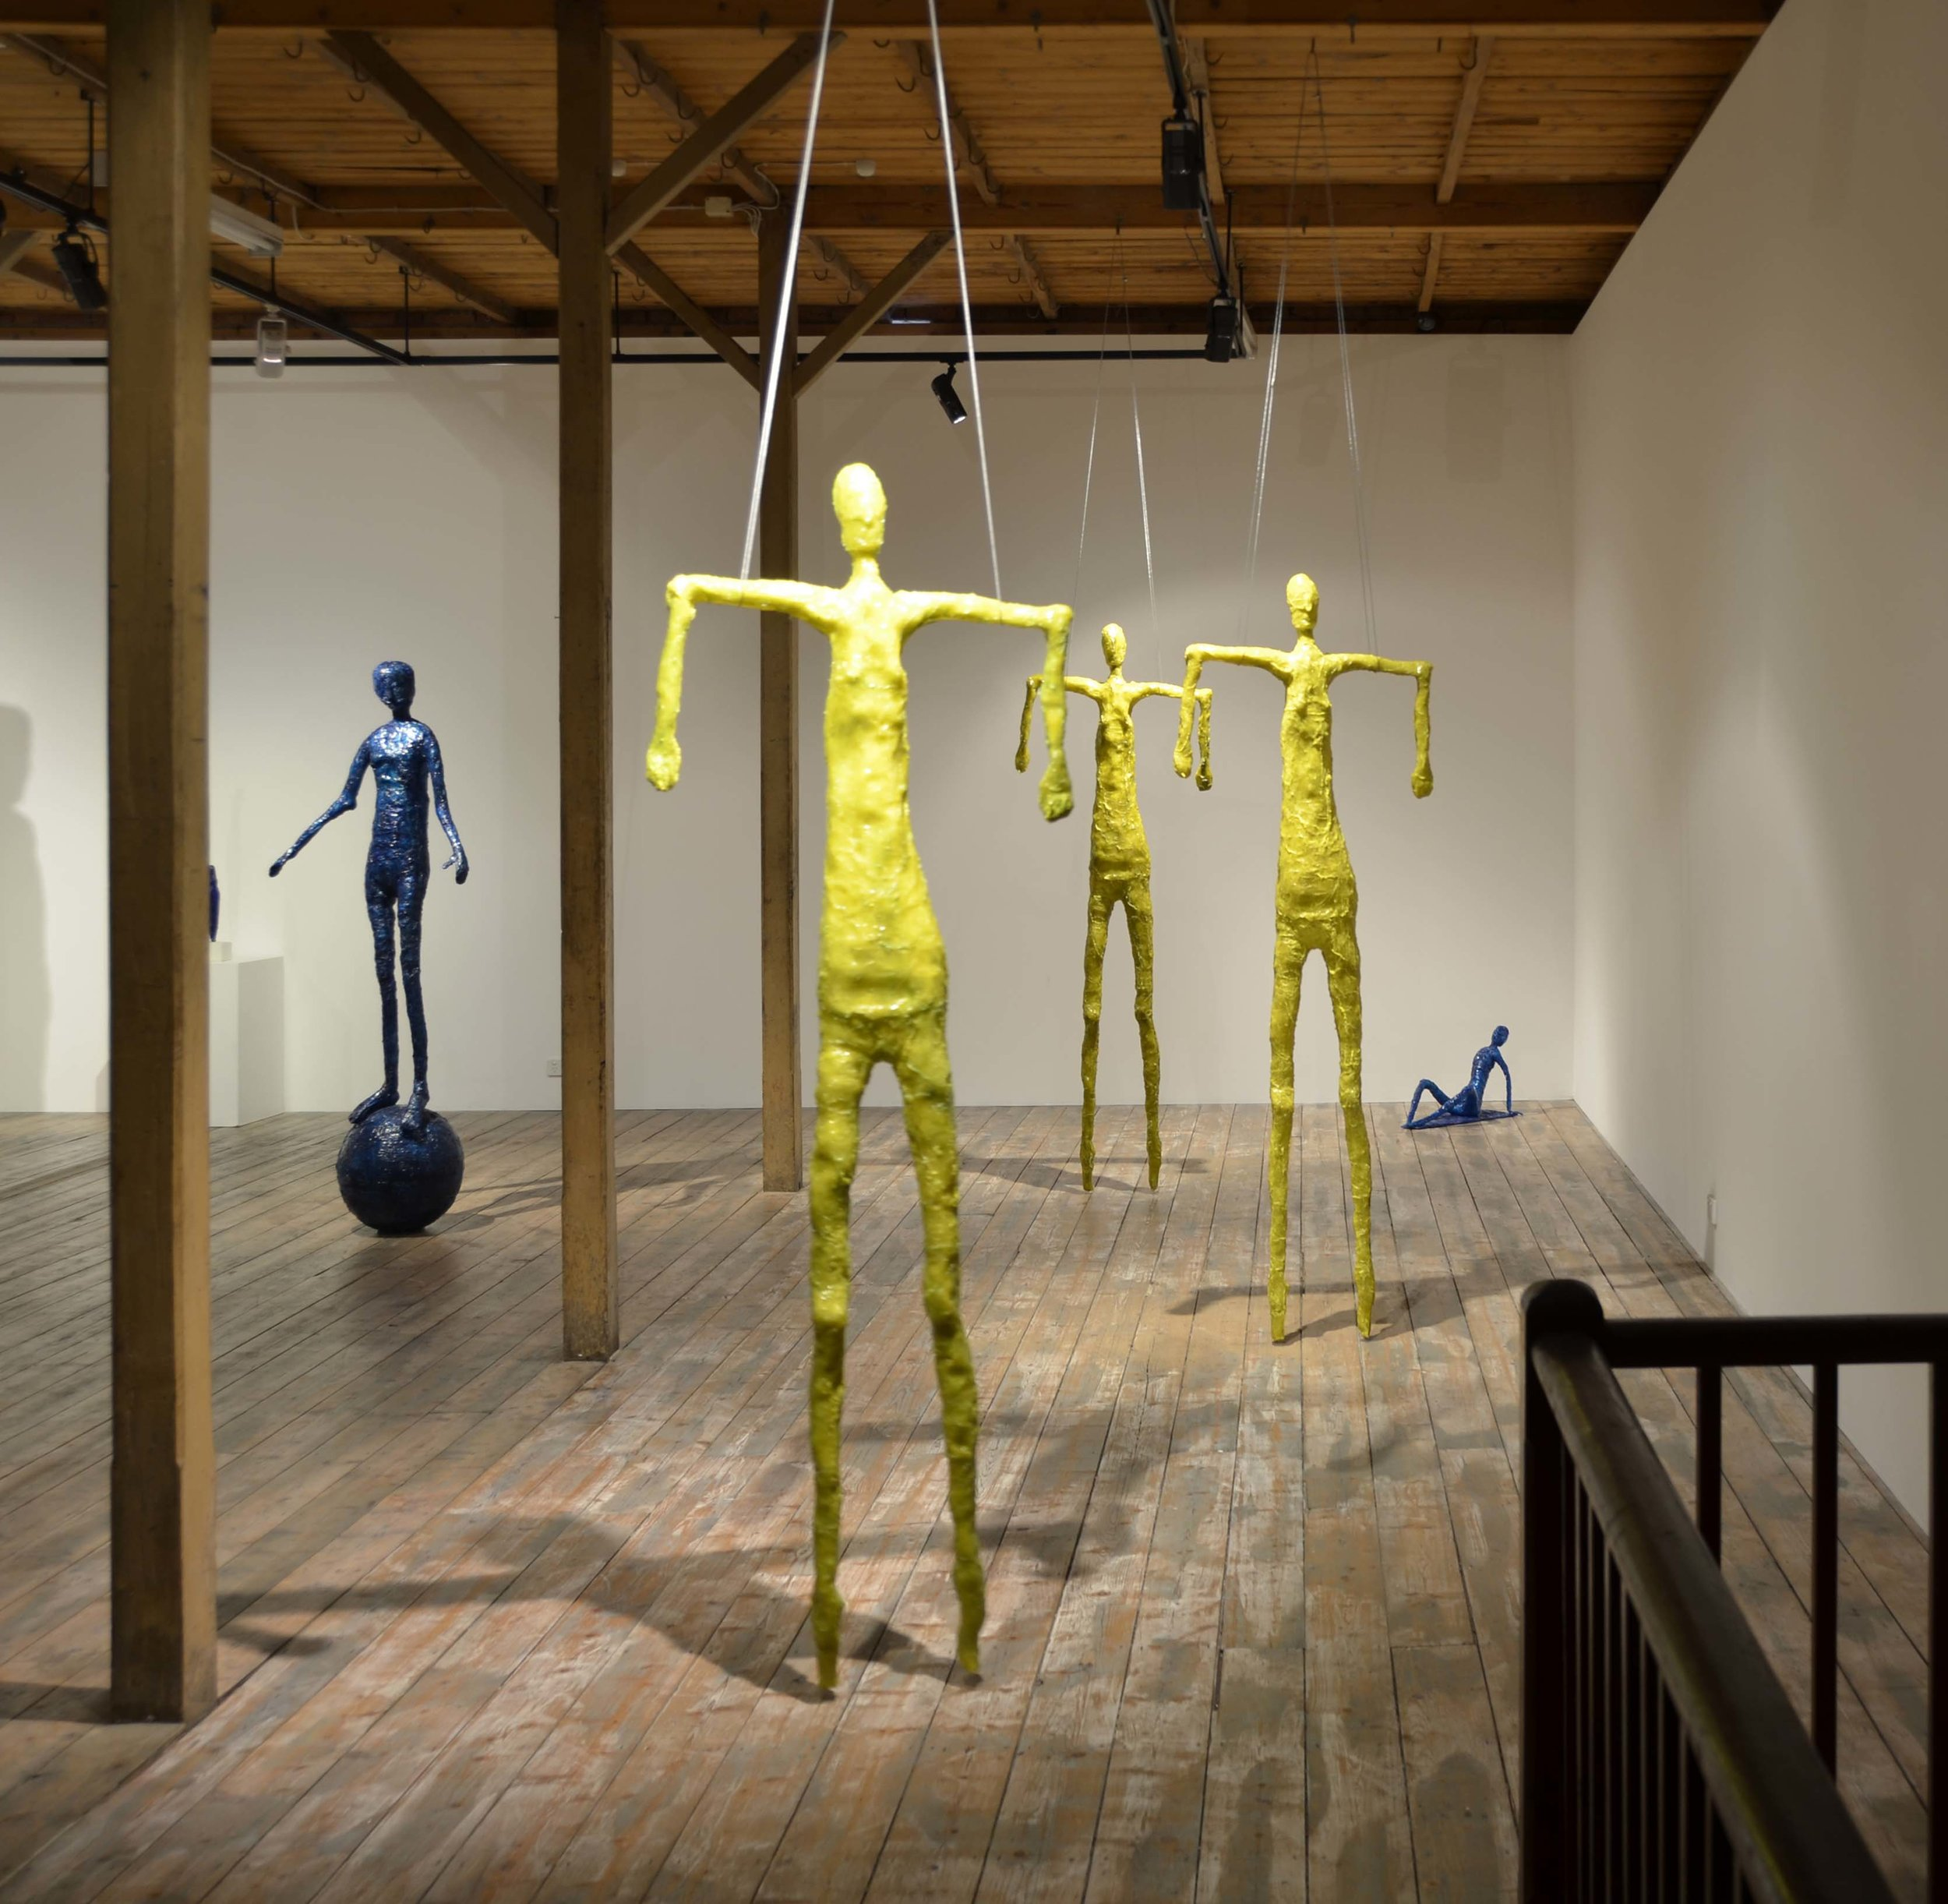 Elisabeth Weissensteiner,  Three Yellow Dancers Floating,  installation view, 2011, polyester resin, fibreglass and pigments, height 220cm each